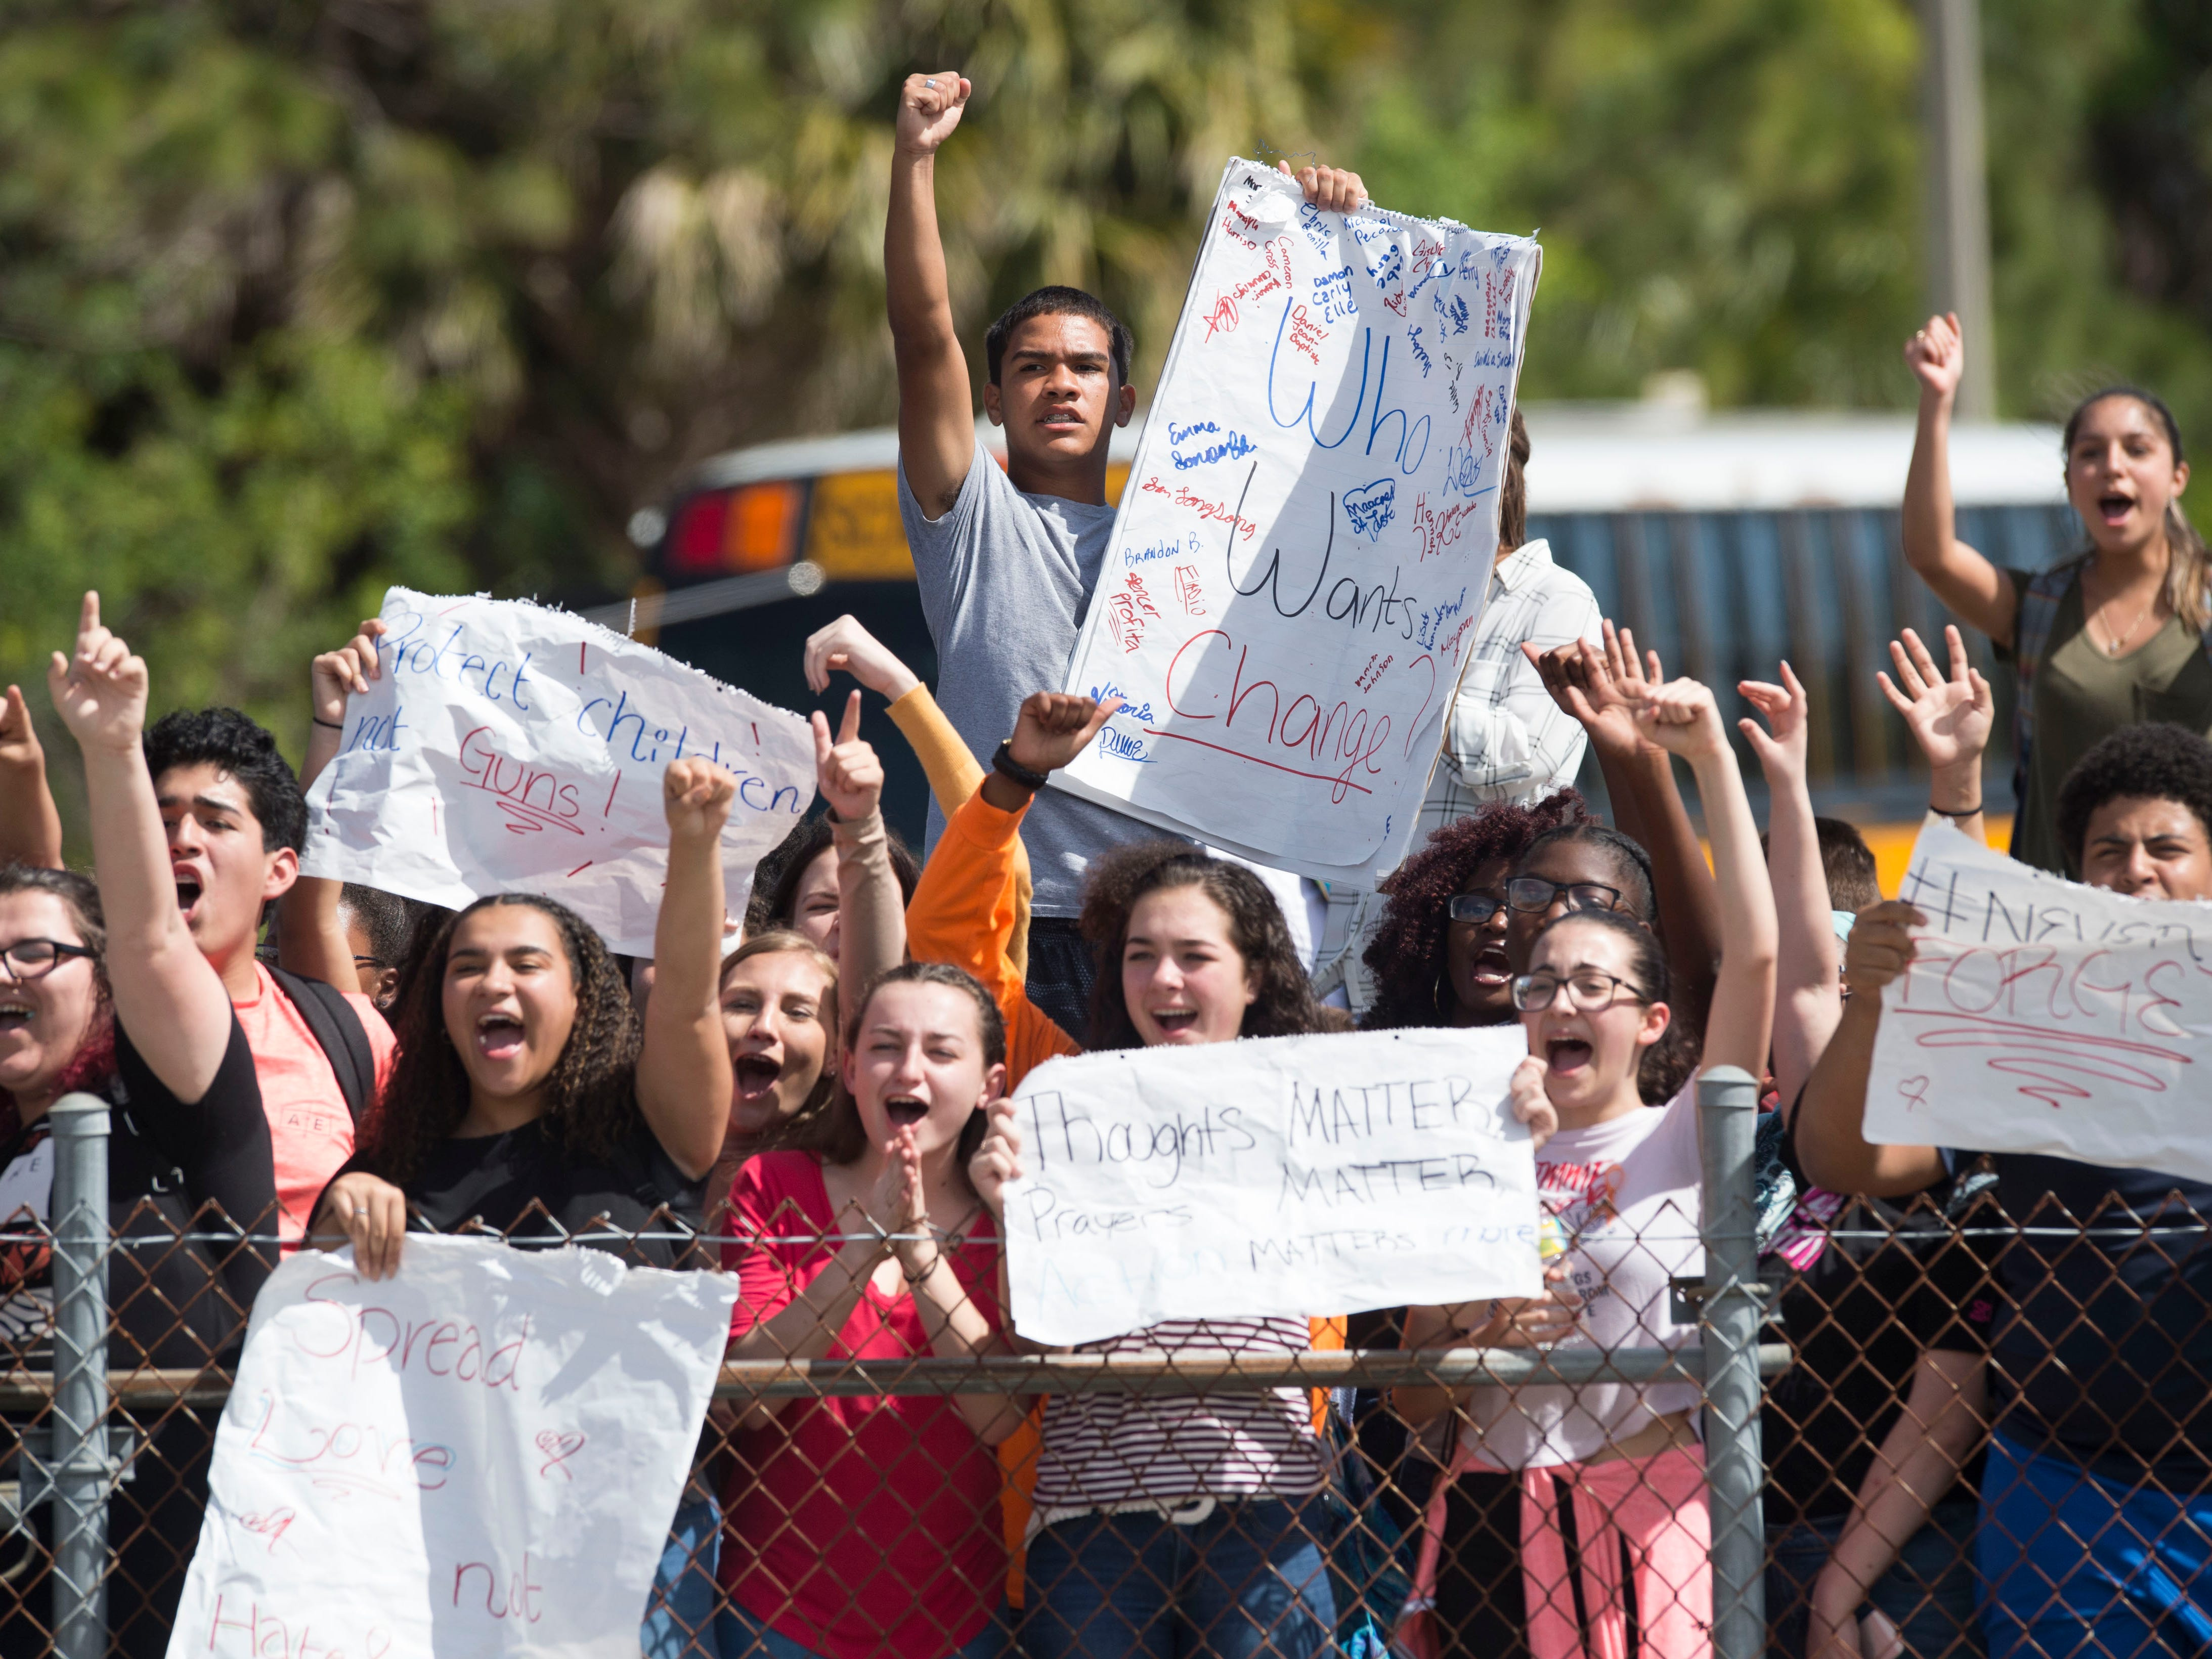 """""""I'm protesting about gun control,"""" said Jonathan Geronimo (center), 15, a Port St. Lucie sophomore, after he and about 100 other Port St. Lucie High School students react to a honking car at the front gates of the school during a peaceful protest honoring the 17 slain Marjory Stoneman Douglas High School students on Feb. 21, 2018 at the school in Port St. Lucie."""